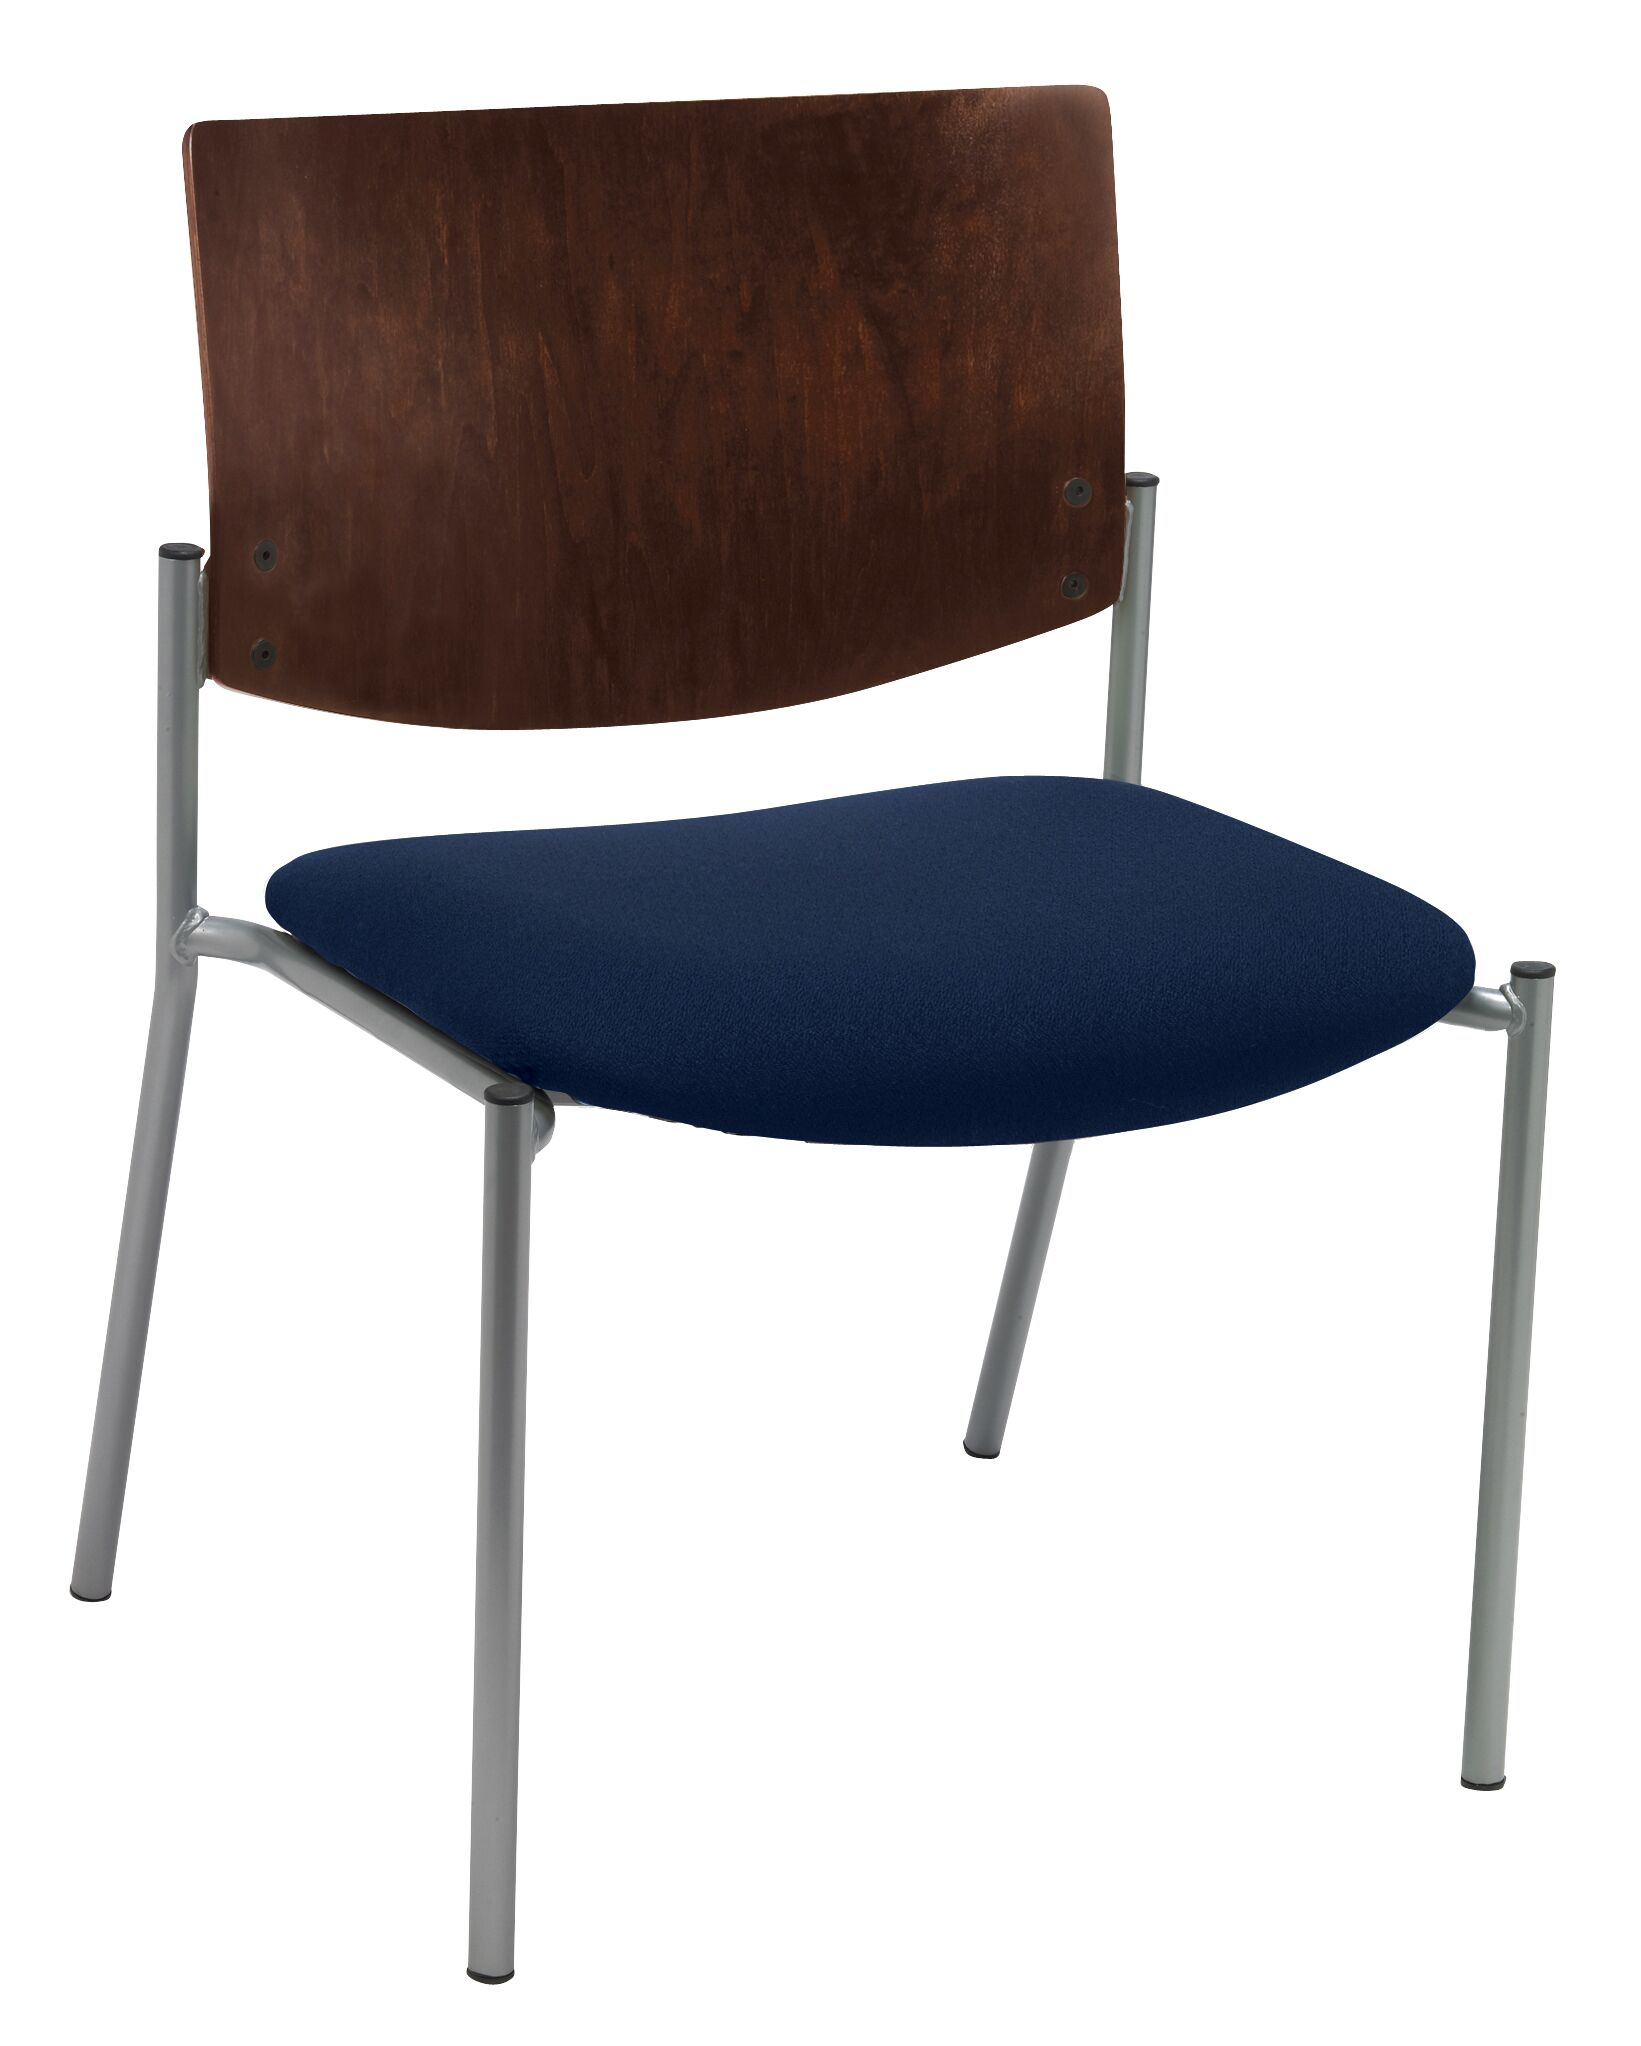 Evolve Big and Tall Armless Guest Chair Frame Finish: Chocolate, Seat Finish: Navy Vinyl